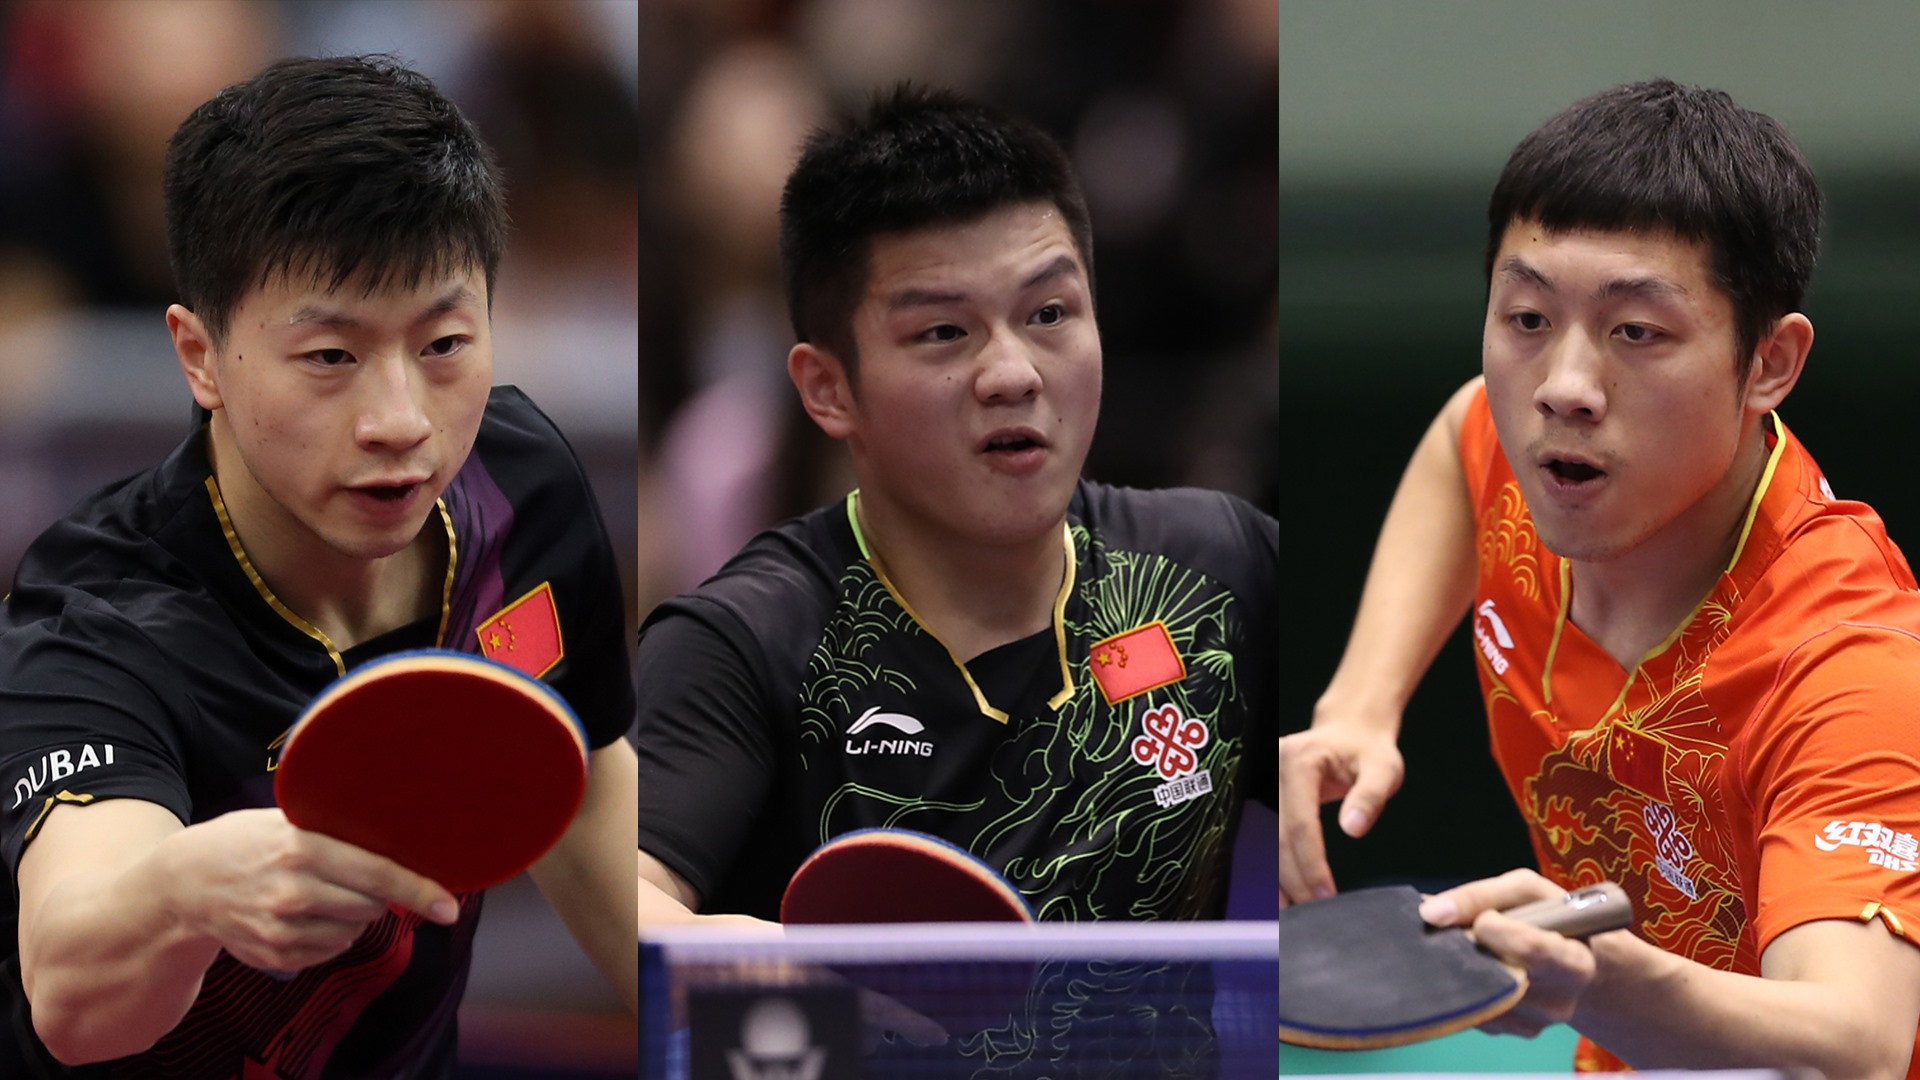 ITTF Decides on Sanctions for Chinese Trio for China Open Forfeits